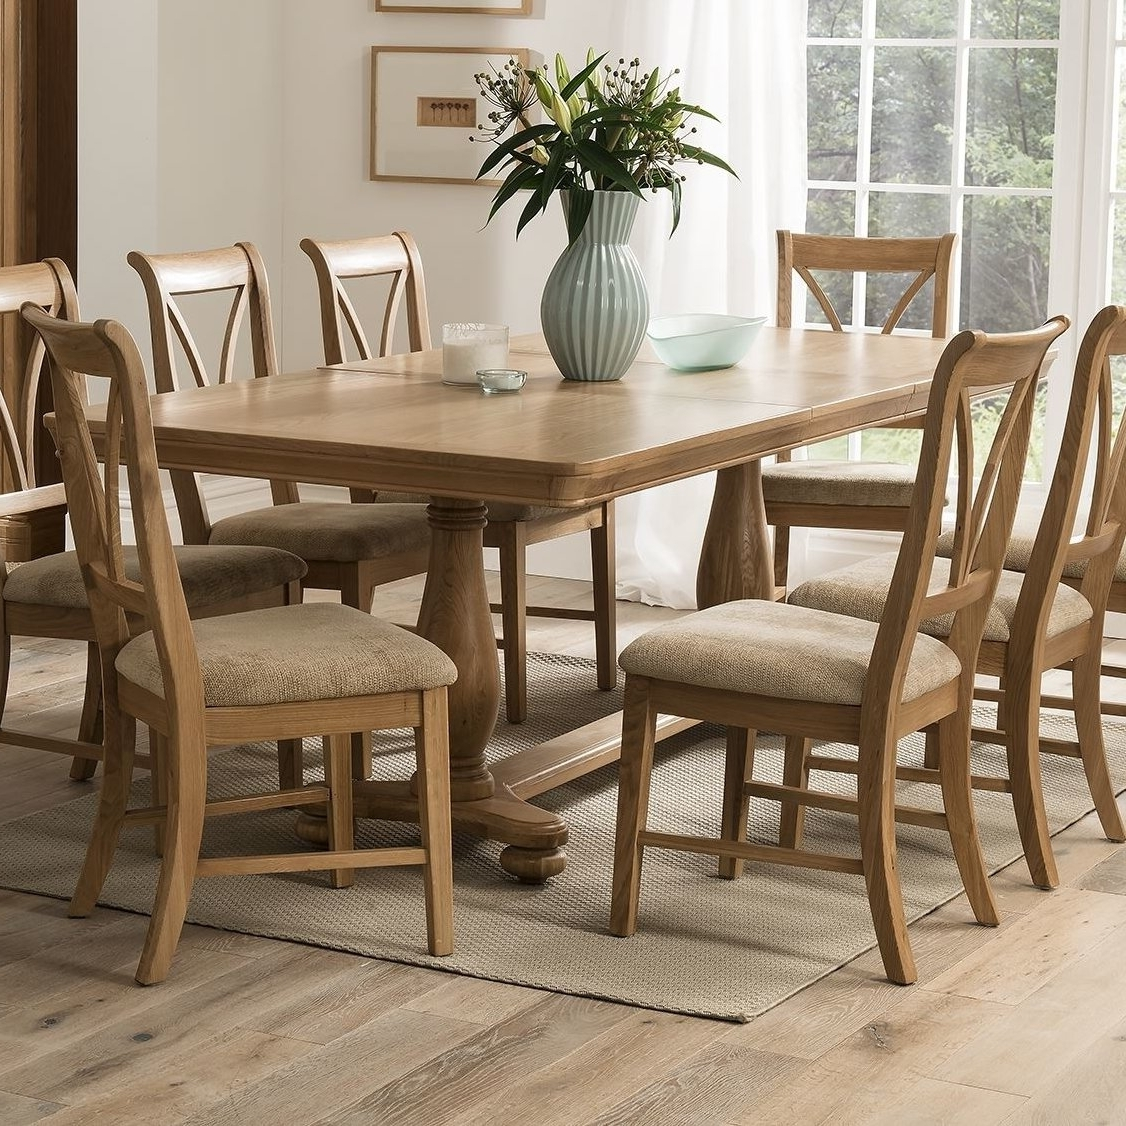 Homestead Living Rowan Extendable Dining Table And 6 Chairs With 2018 Extendable Dining Table And 6 Chairs (View 9 of 25)